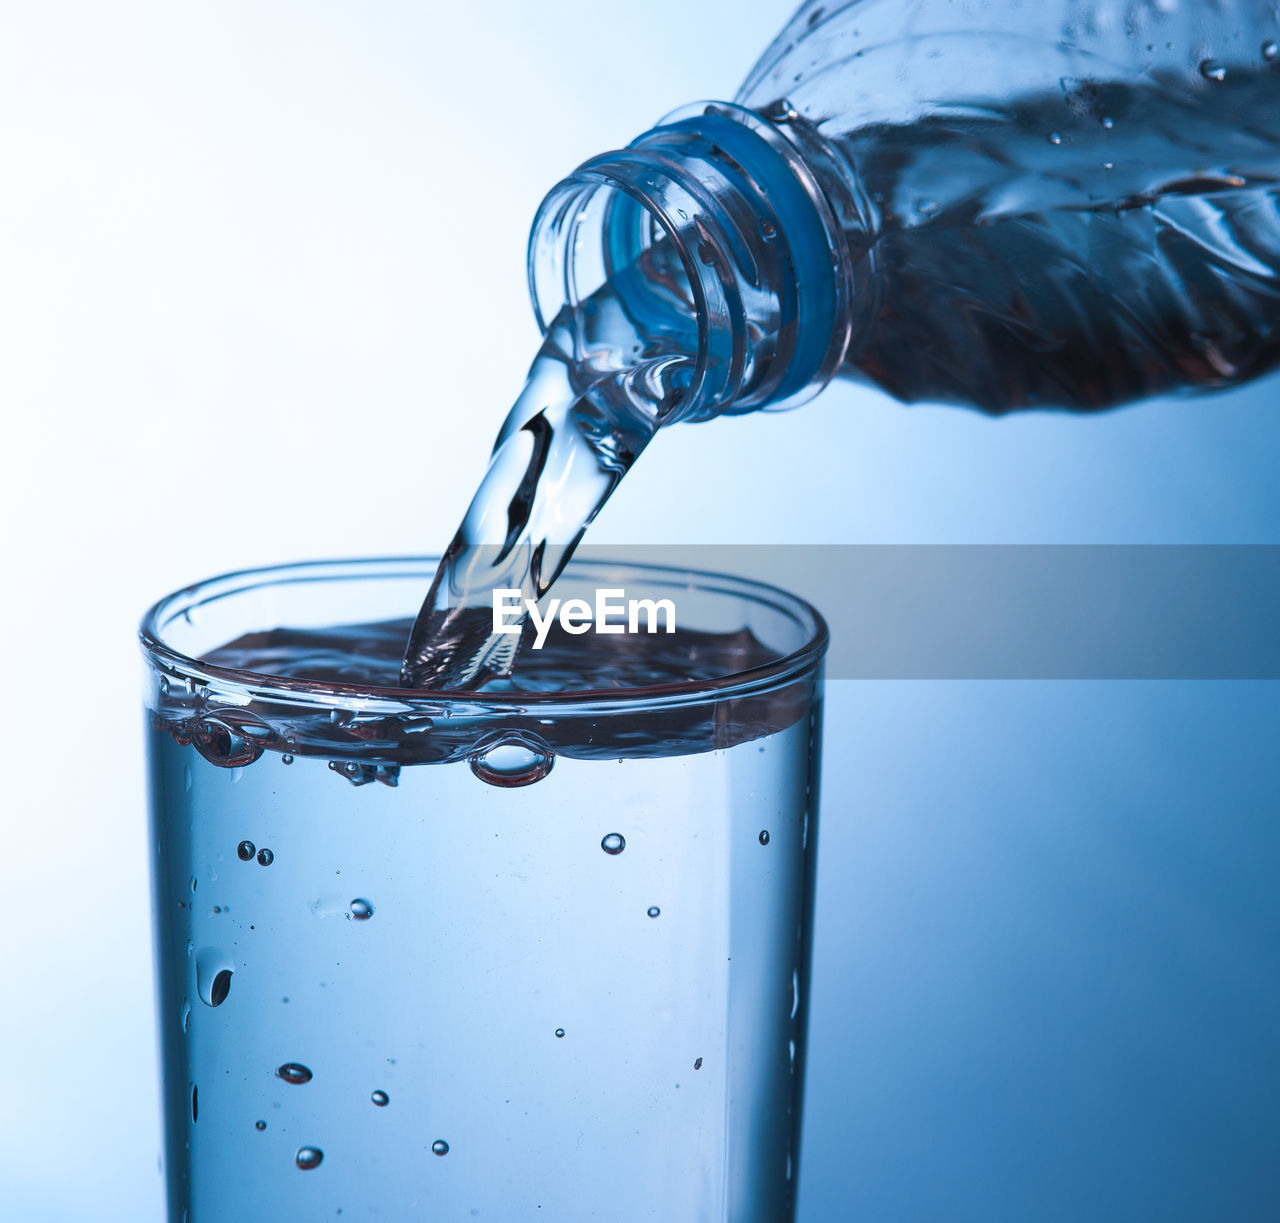 water, drink, refreshment, pouring, motion, glass - material, glass, transparent, drinking glass, studio shot, indoors, close-up, no people, household equipment, blue, food and drink, bottle, container, freshness, purity, flowing, high-speed photography, blue background